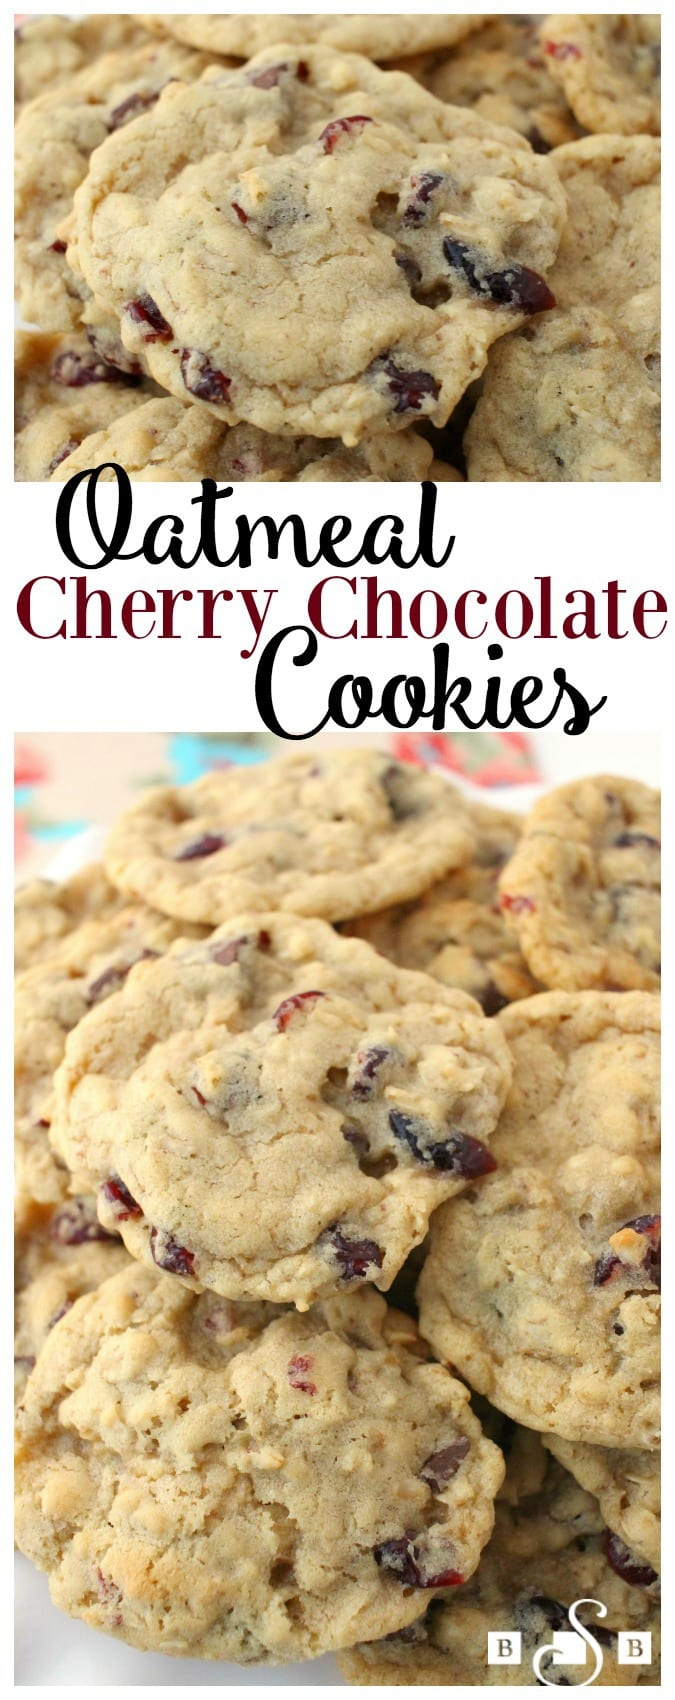 Today I want to share a delightful Oatmeal cookie recipe with you. It has great flavor and I love the crispy on the outside, chewy on the inside texture. I used Craisins® - Cherry Juice Infused but feel free to swap in any type of Craisins® that you'd like! Be sure to scroll down to see the video of how I incorporated Craisins® into my day- including making these cookies!